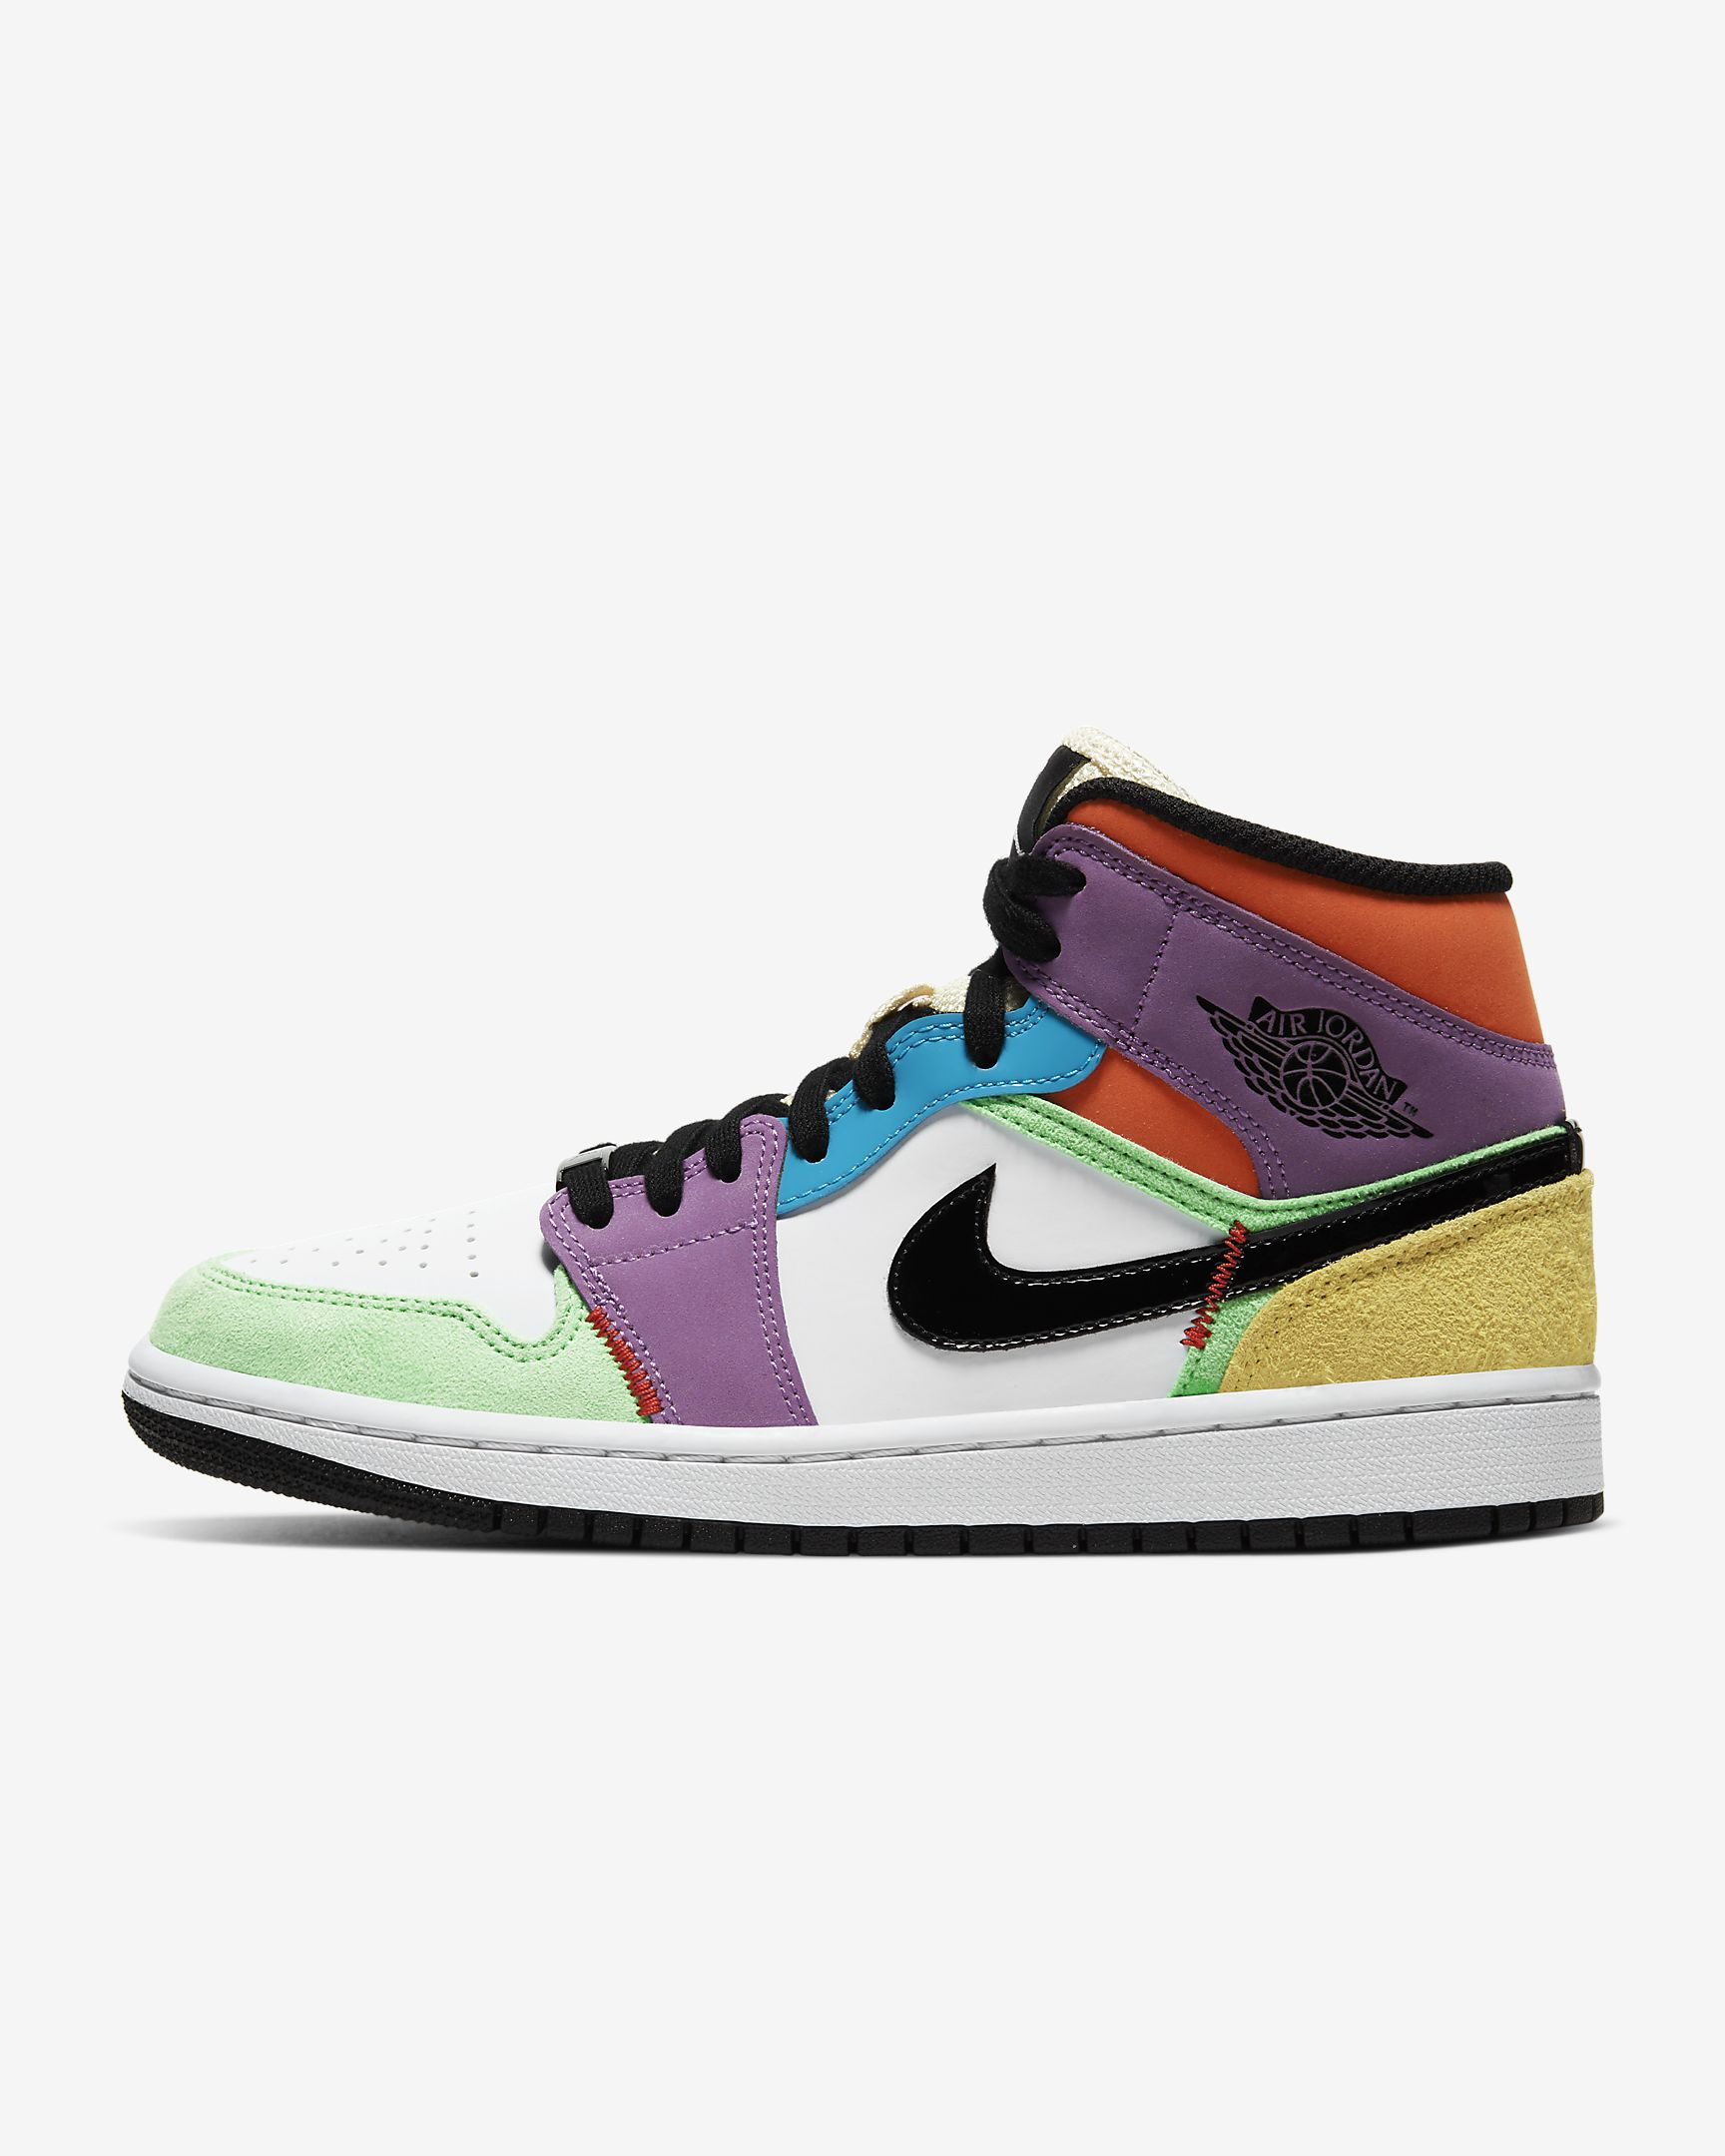 A new and colorful version of an icon. The Air Jordan 1 Mid SE offers the unmistakable style and attitude of the original AJ1 with a fresh fit for greater versatility.